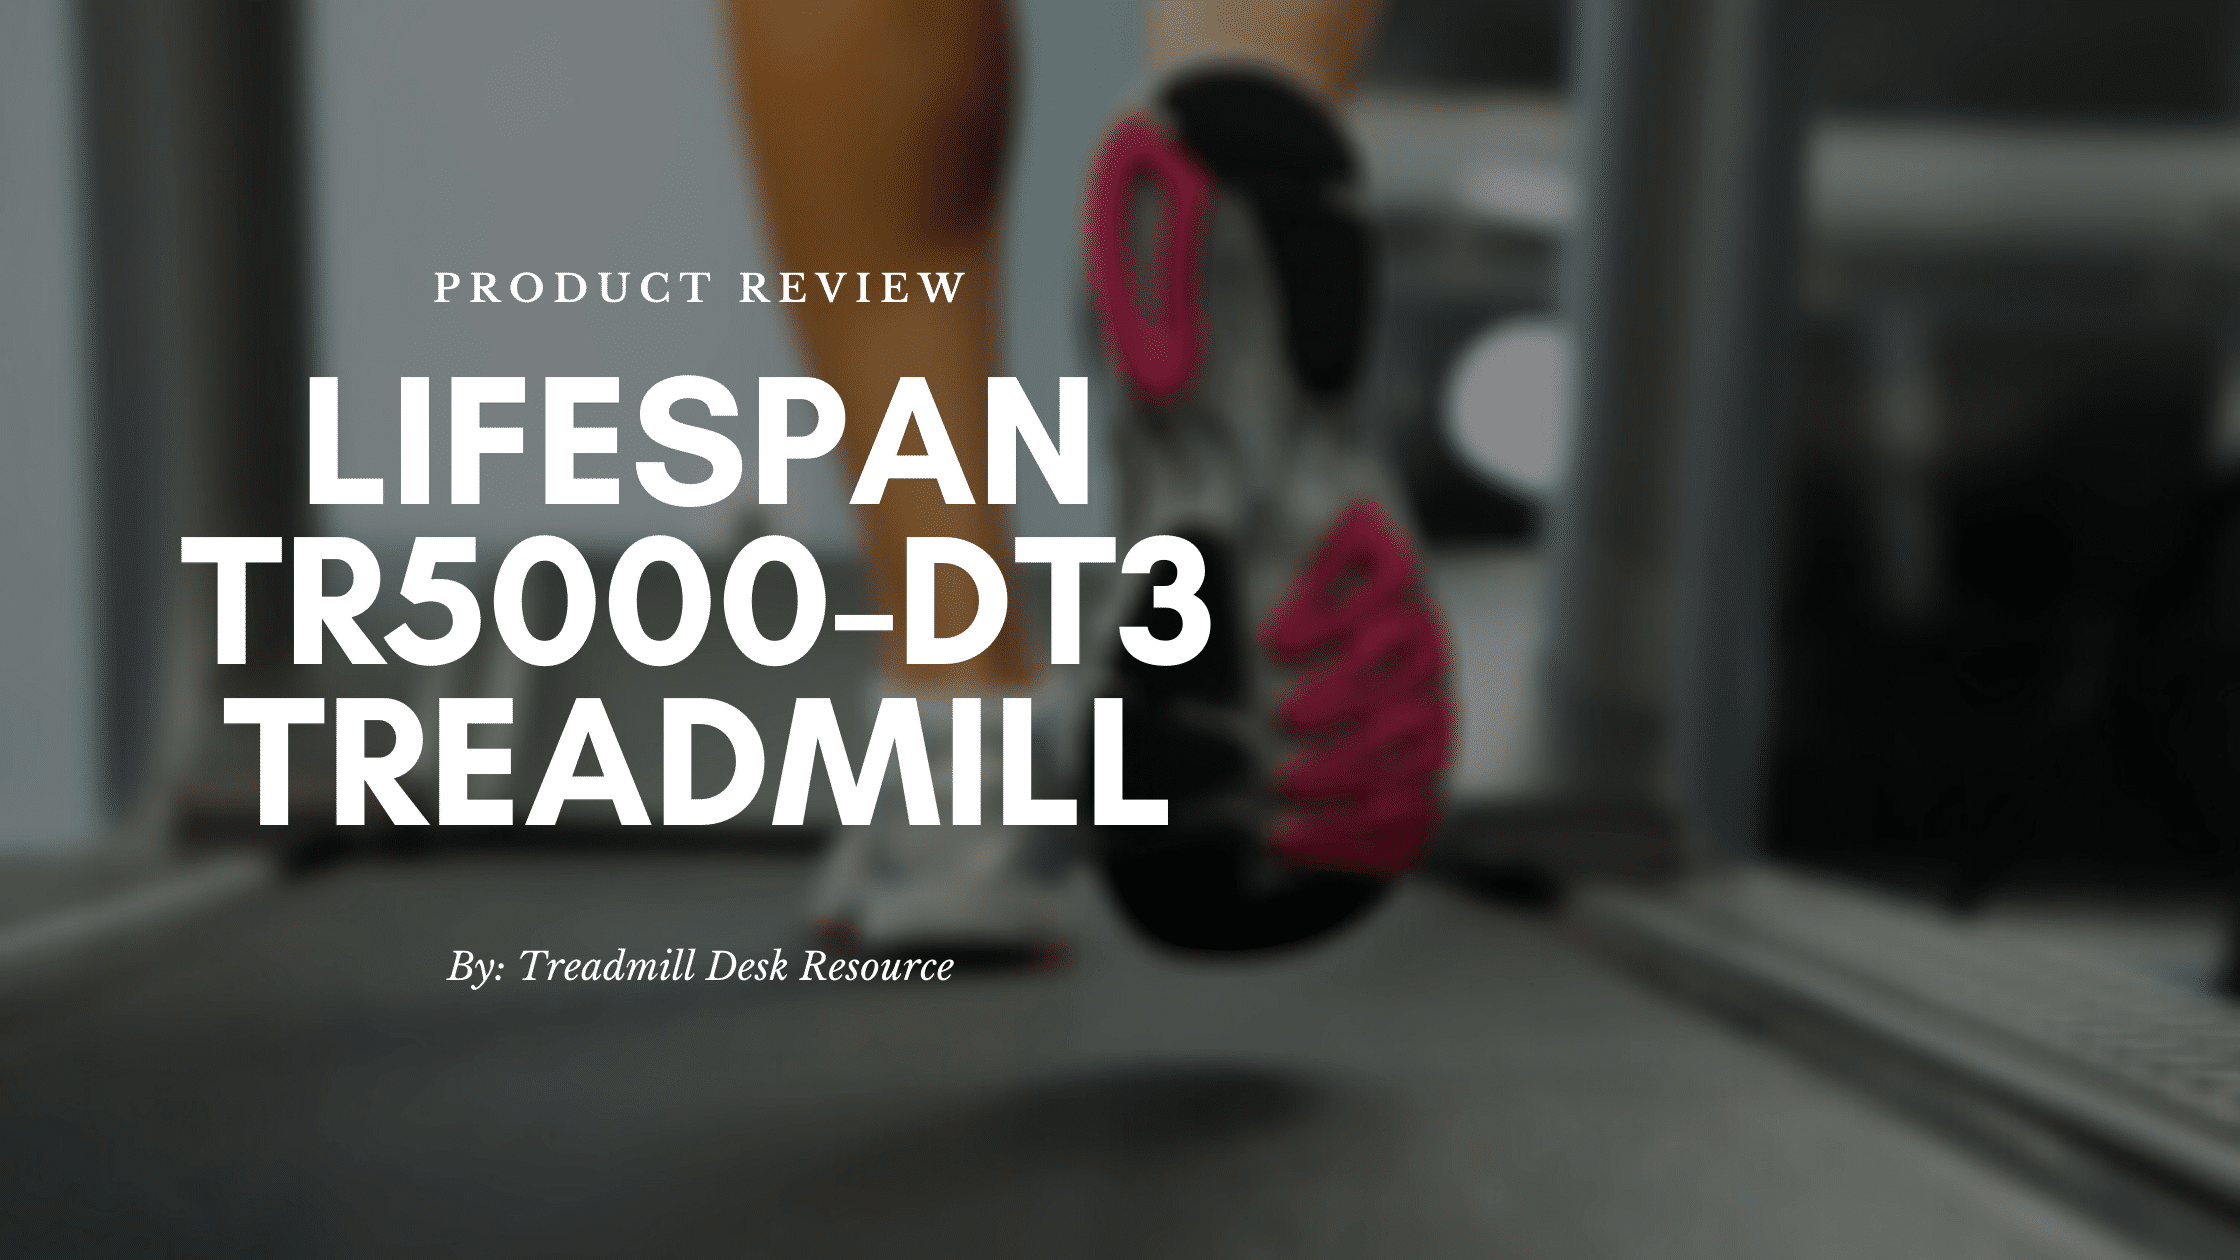 lifespan tr5000-dt3 featured